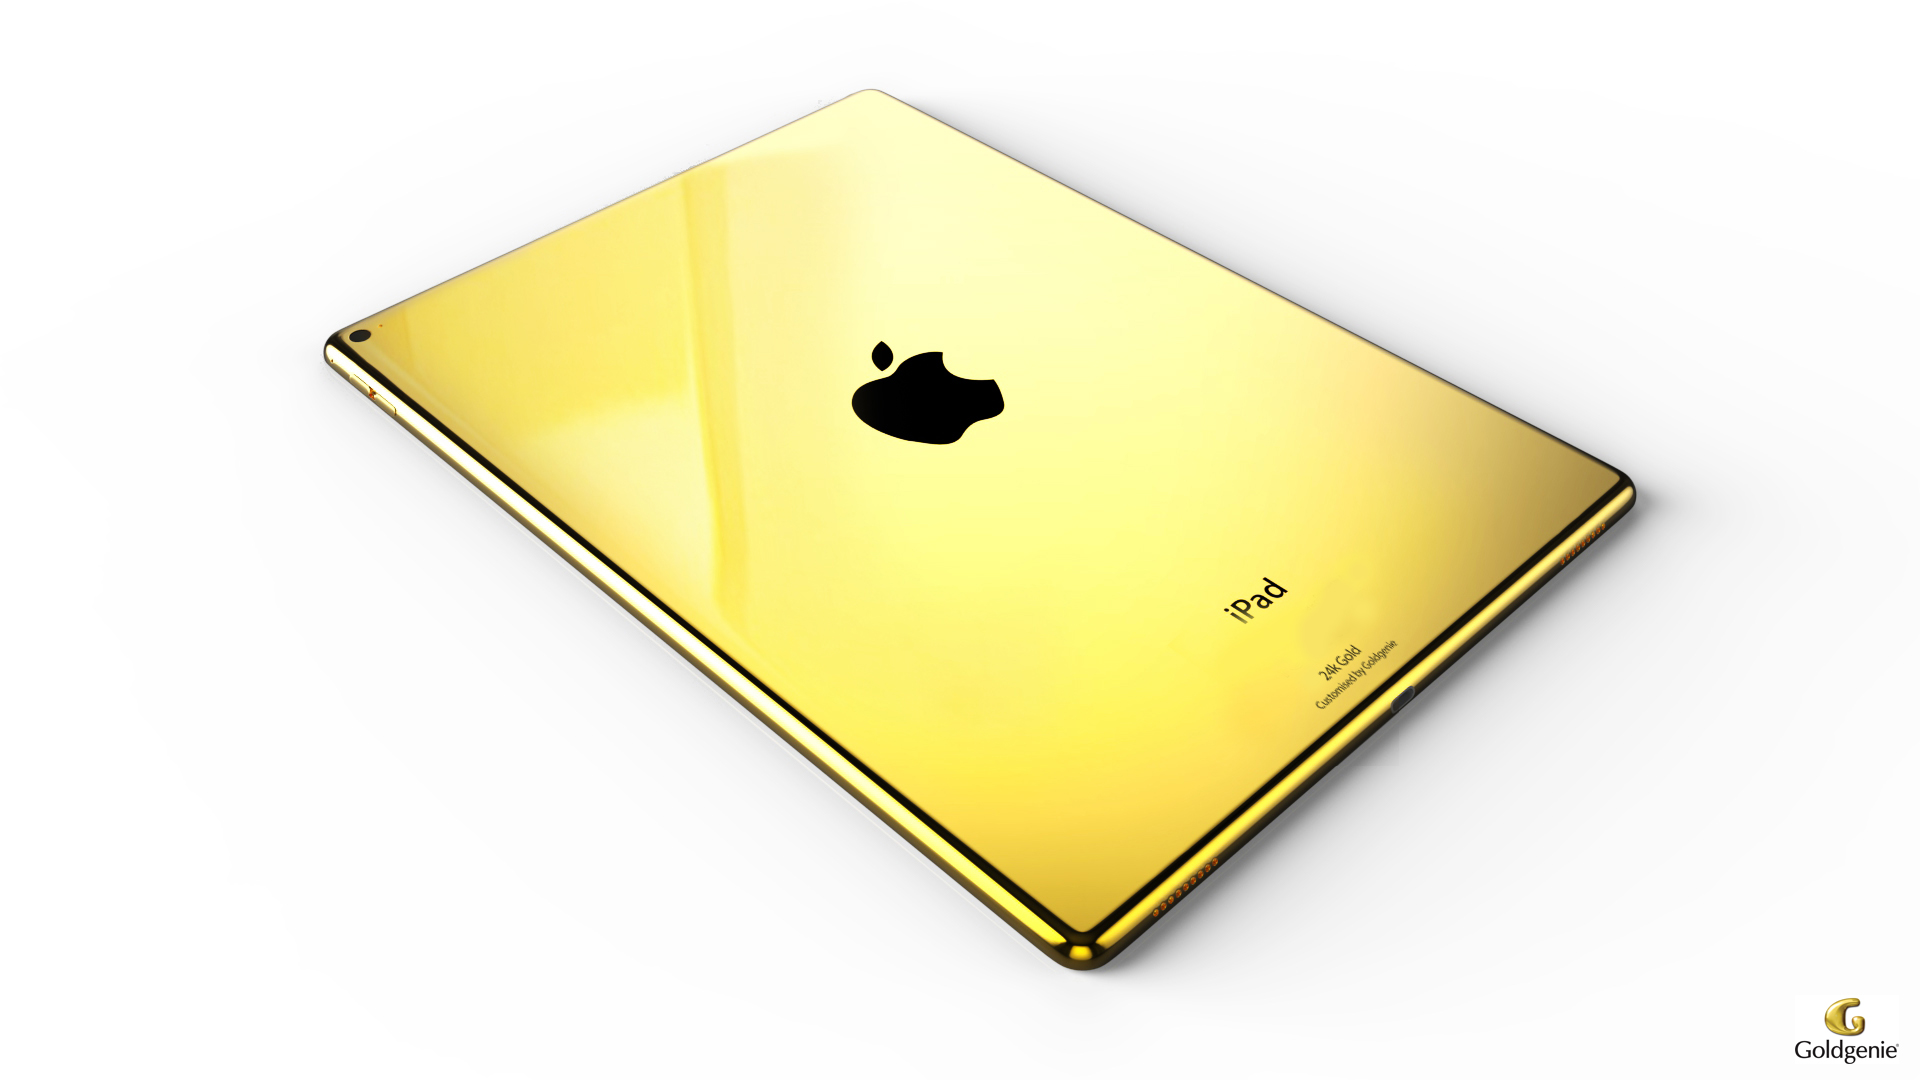 Ipad Pro 9 7 Might Feature A 4k Video Capable 12 Mp Camera